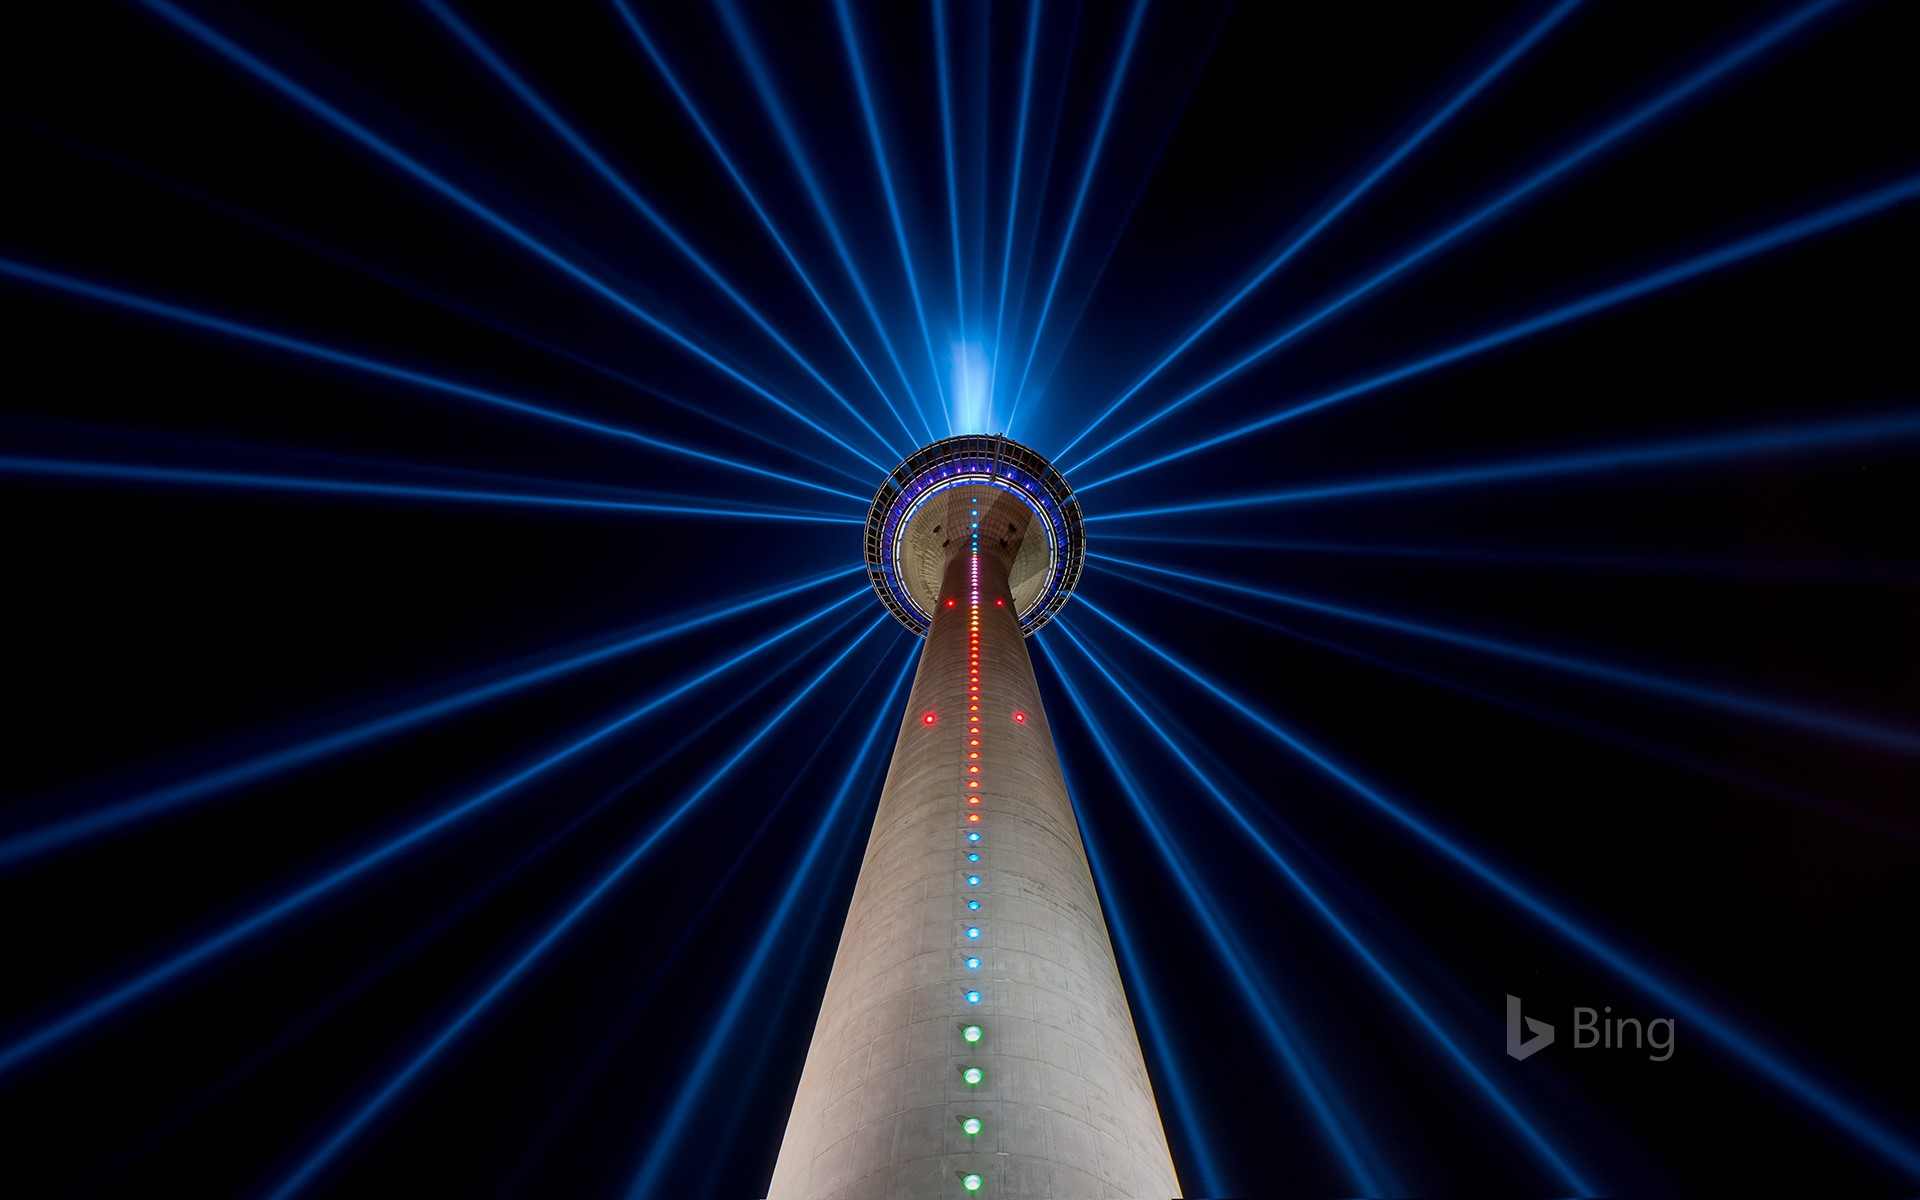 The Rheinturm at night in Düsseldorf, Germany